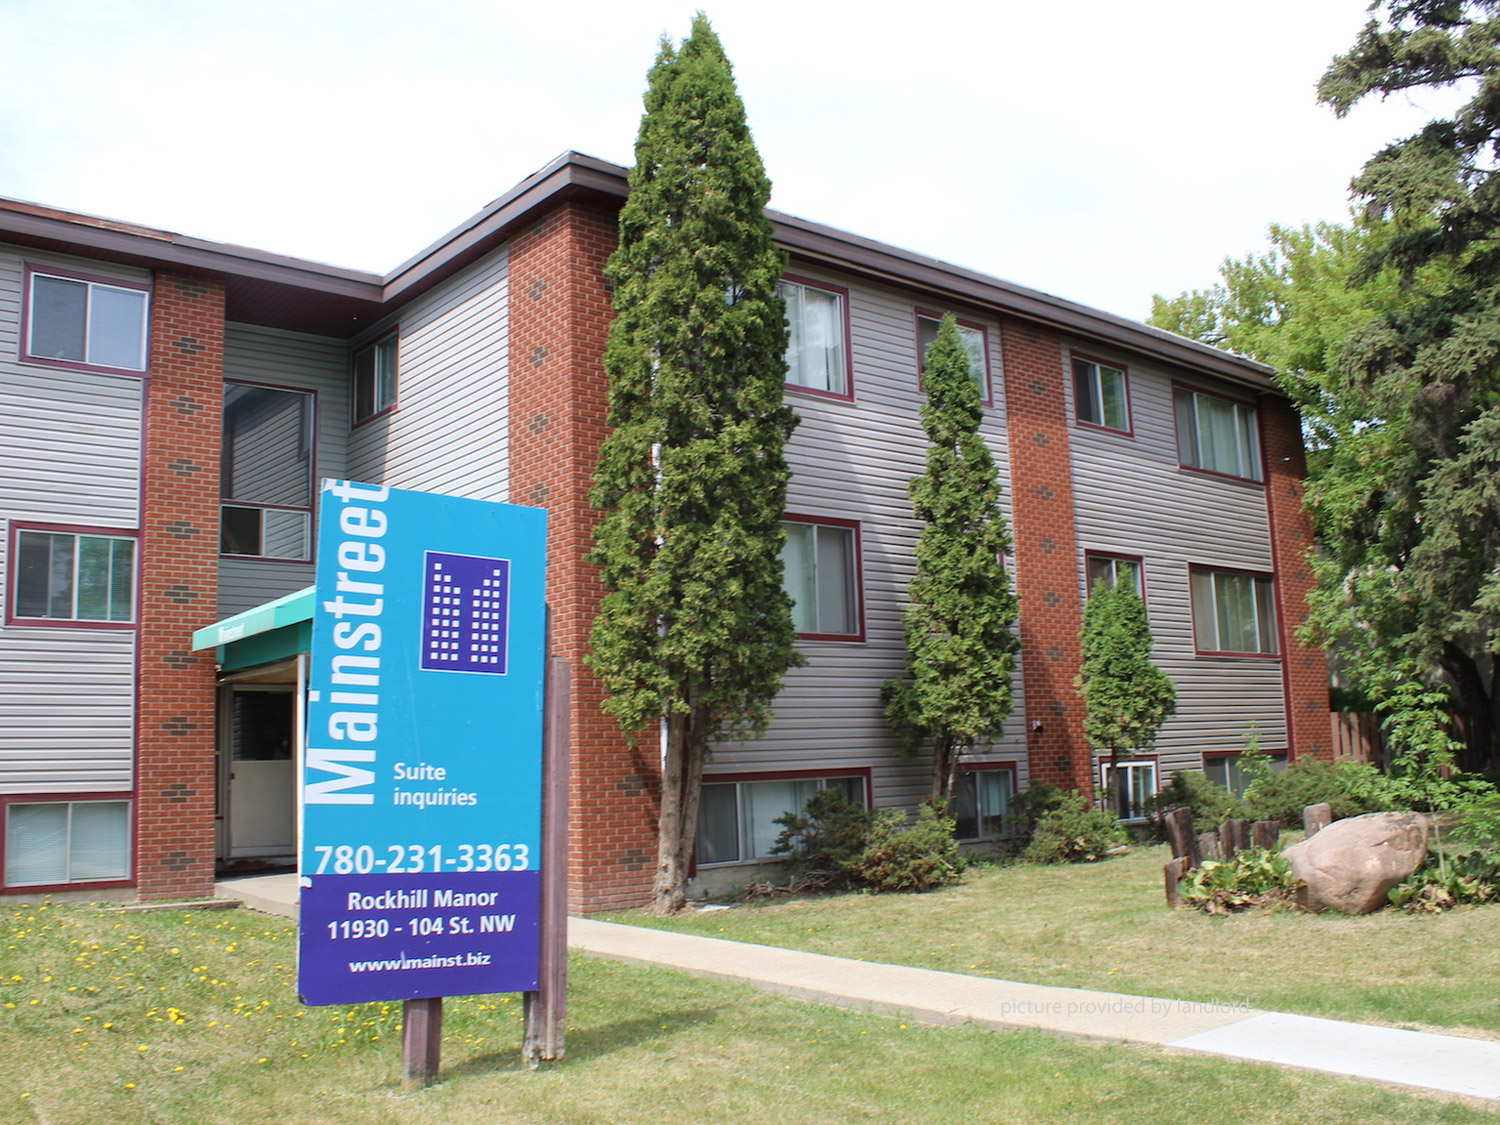 118 AVE NW-97 ST NW, Edmonton, AB : 1 Bedroom for rent ...